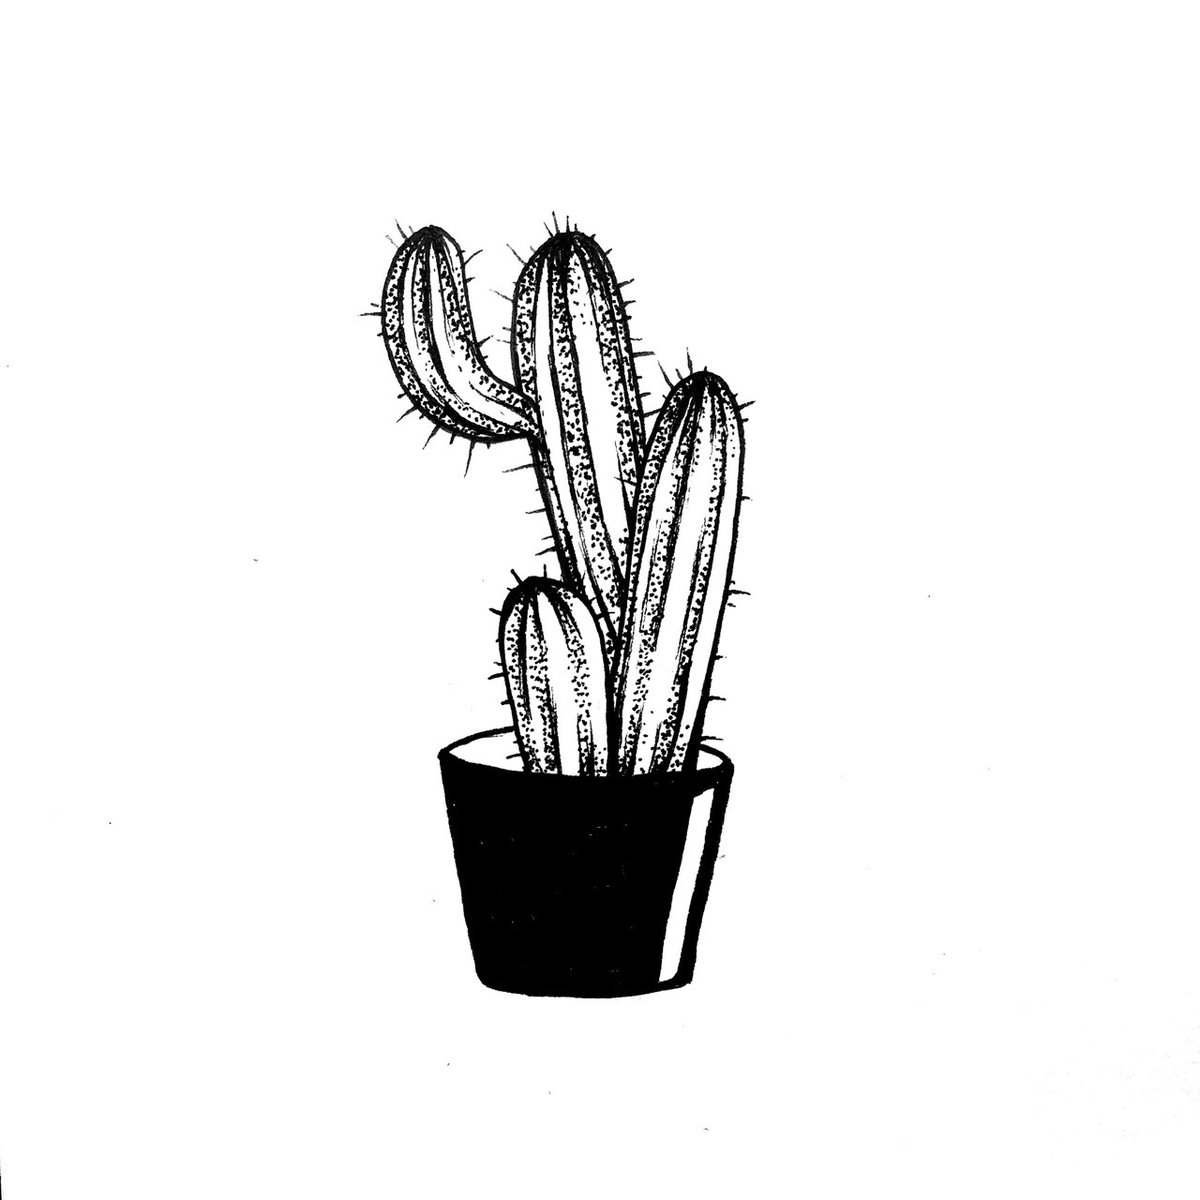 Cactus Drawing Black And White Tumblr Card From User S Nika92 In